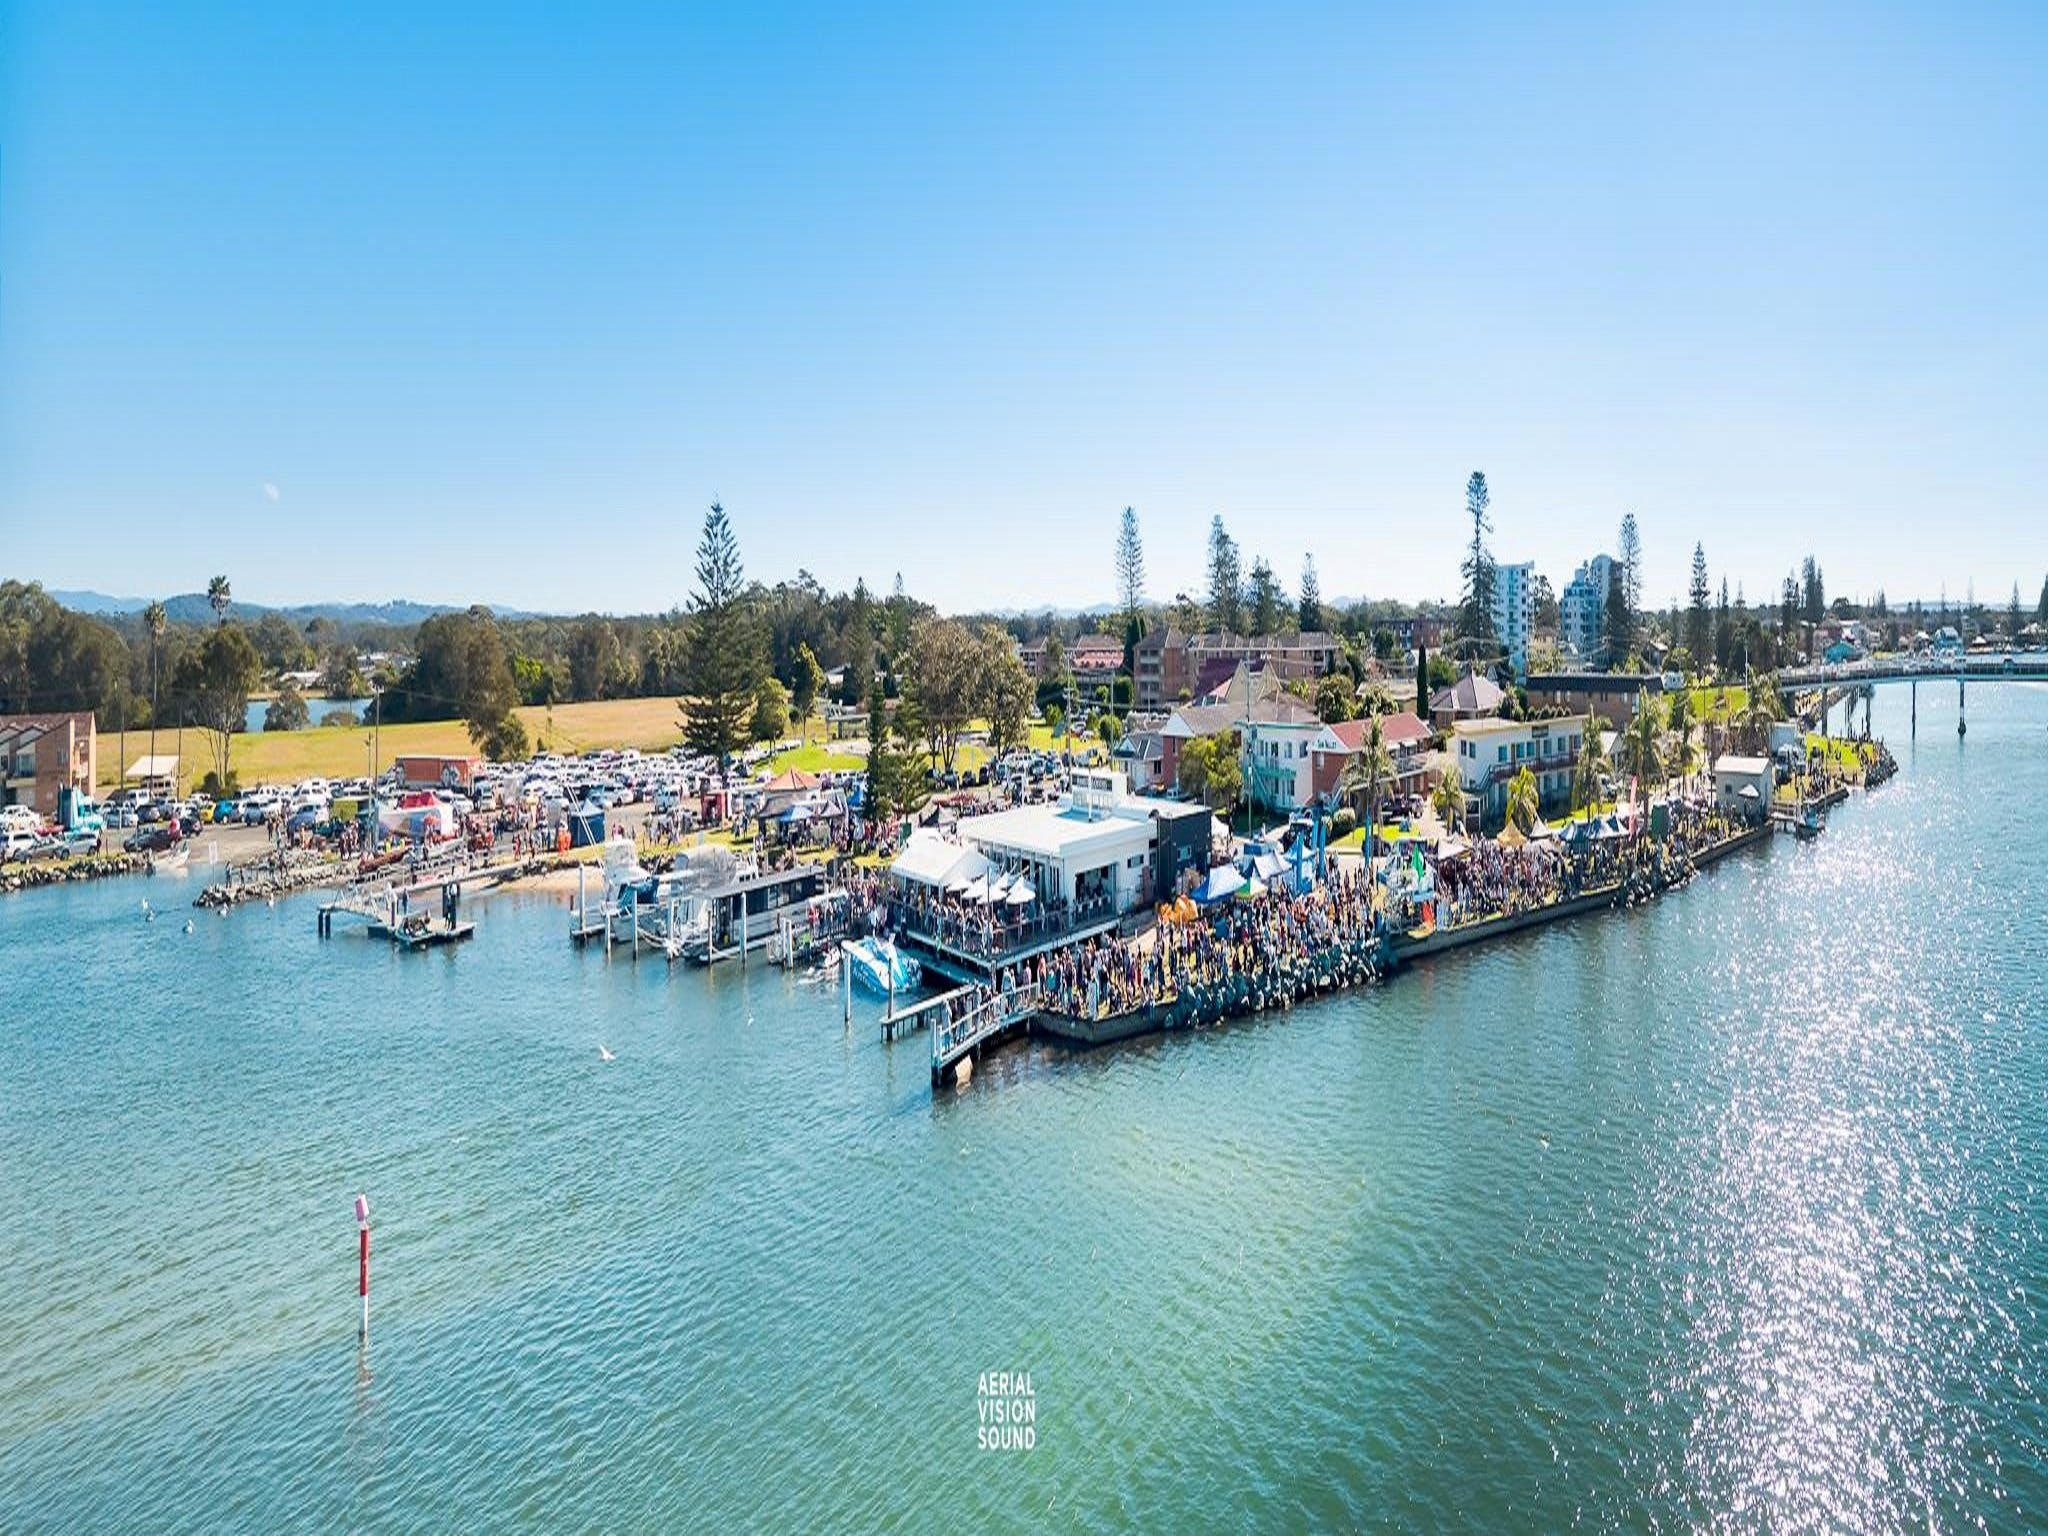 Fred Williams Aquatic Festival - Accommodation Melbourne